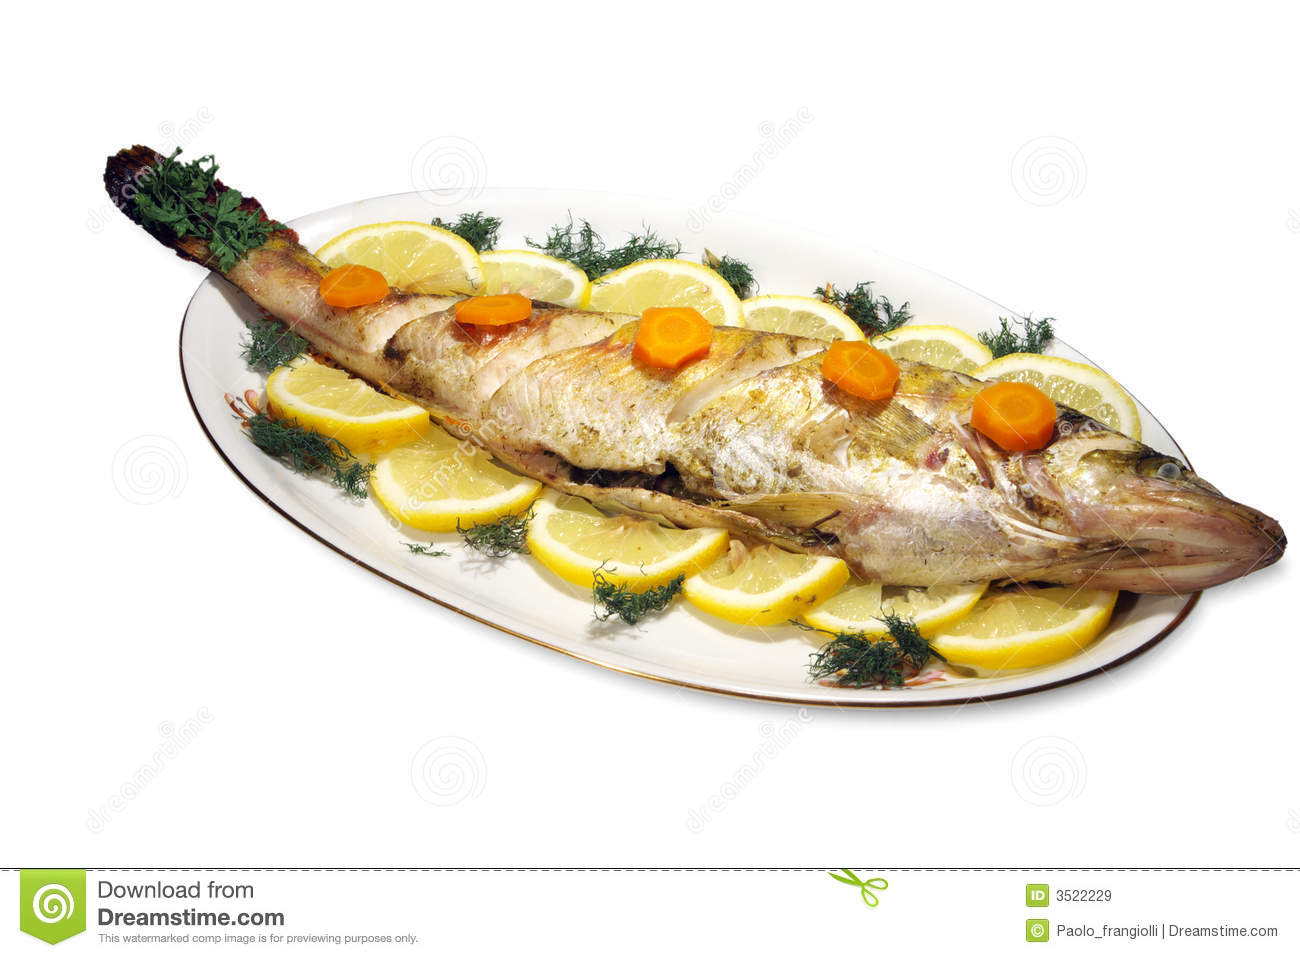 Poissons cuits au four image stock image du manger for Nourriture du poisson